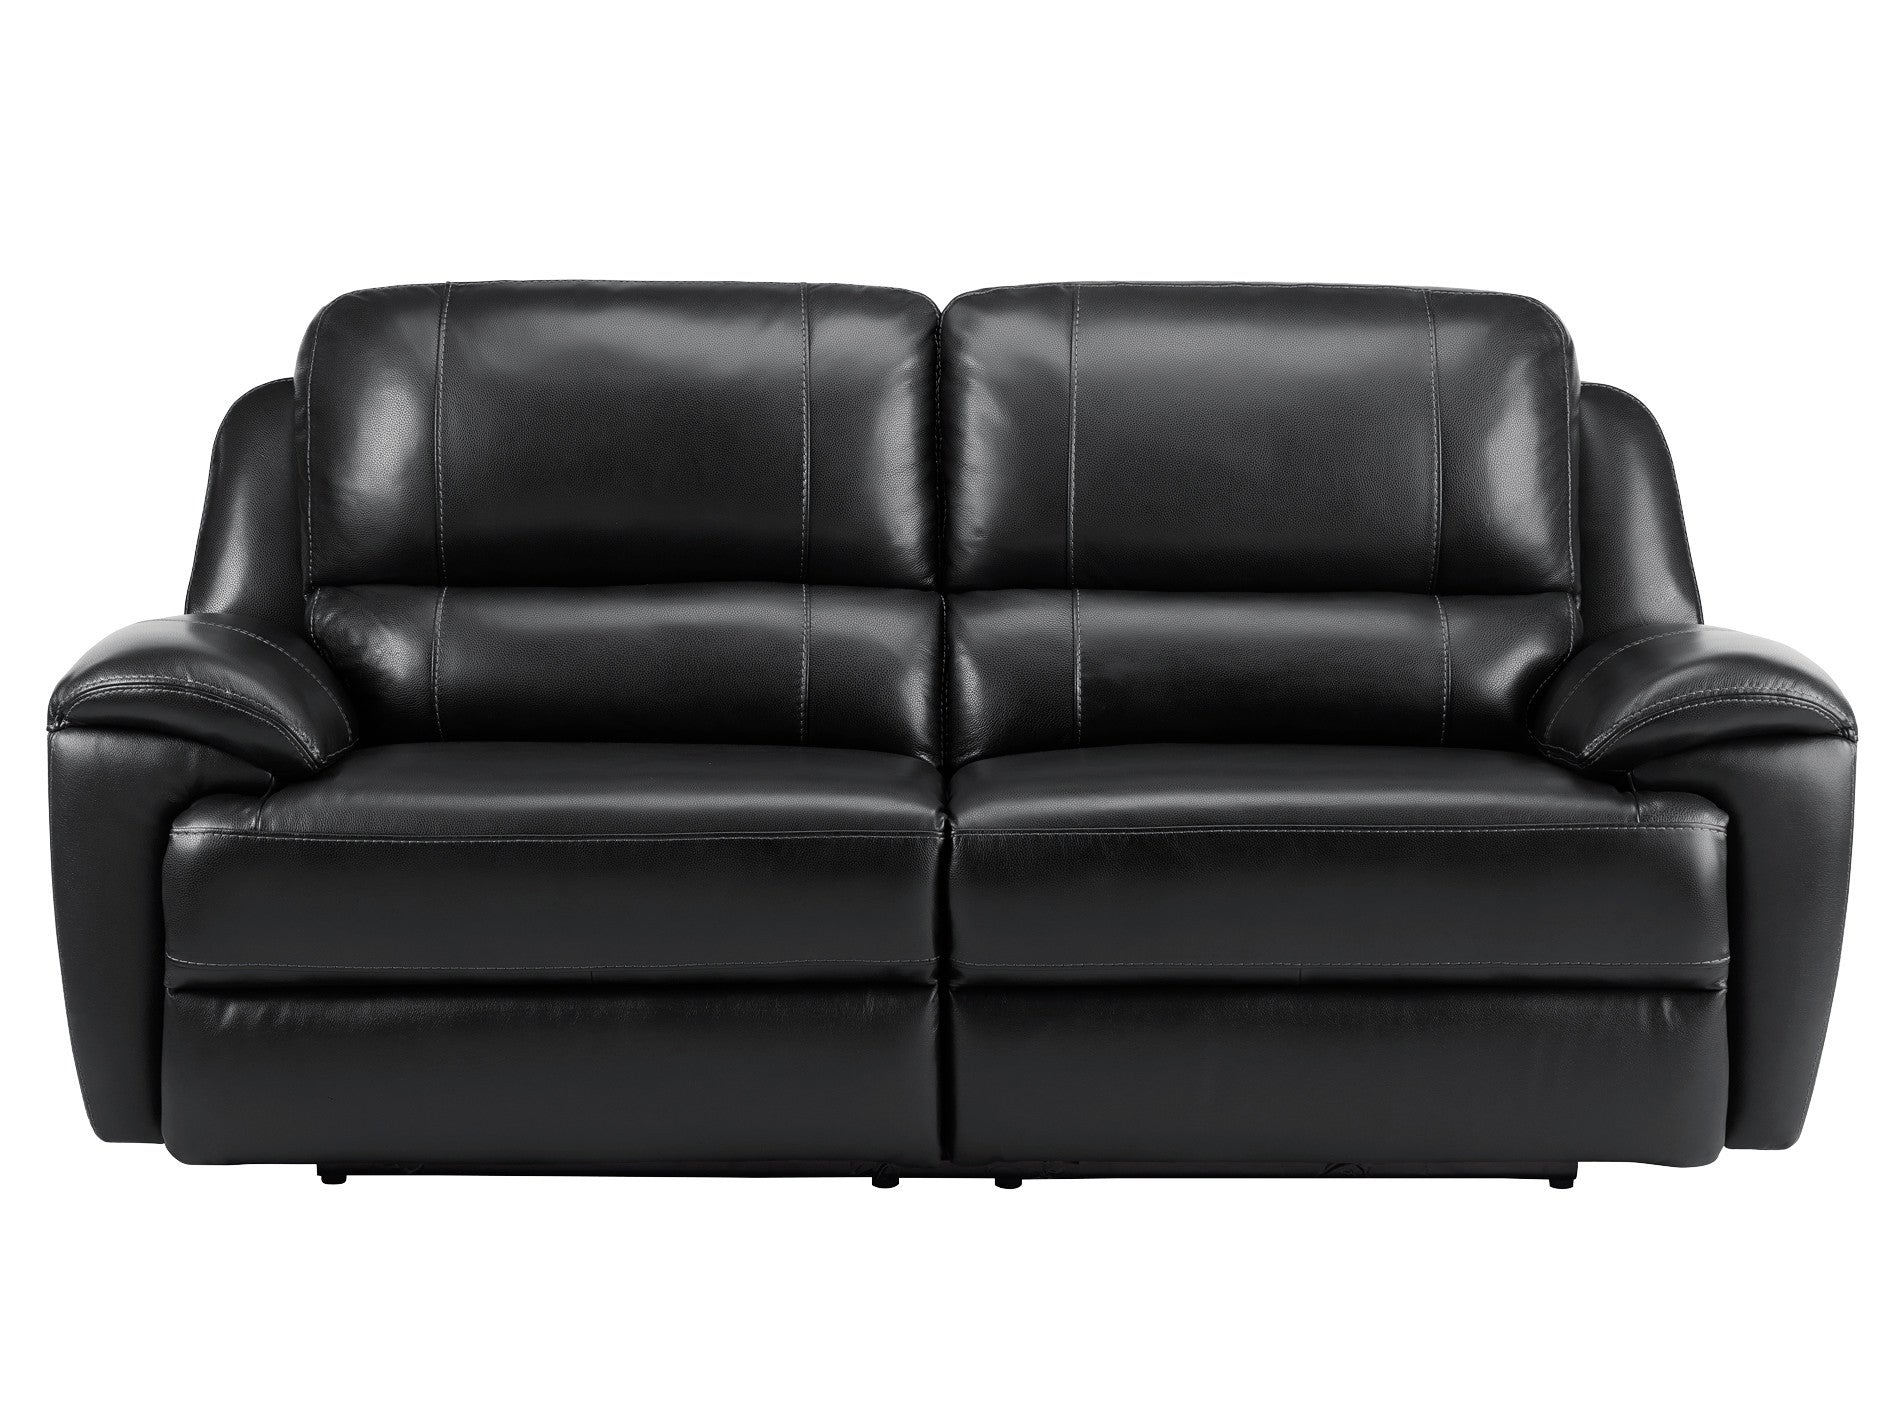 Finley Sofa with 2 Electric Recliners Black Leather – Sofa